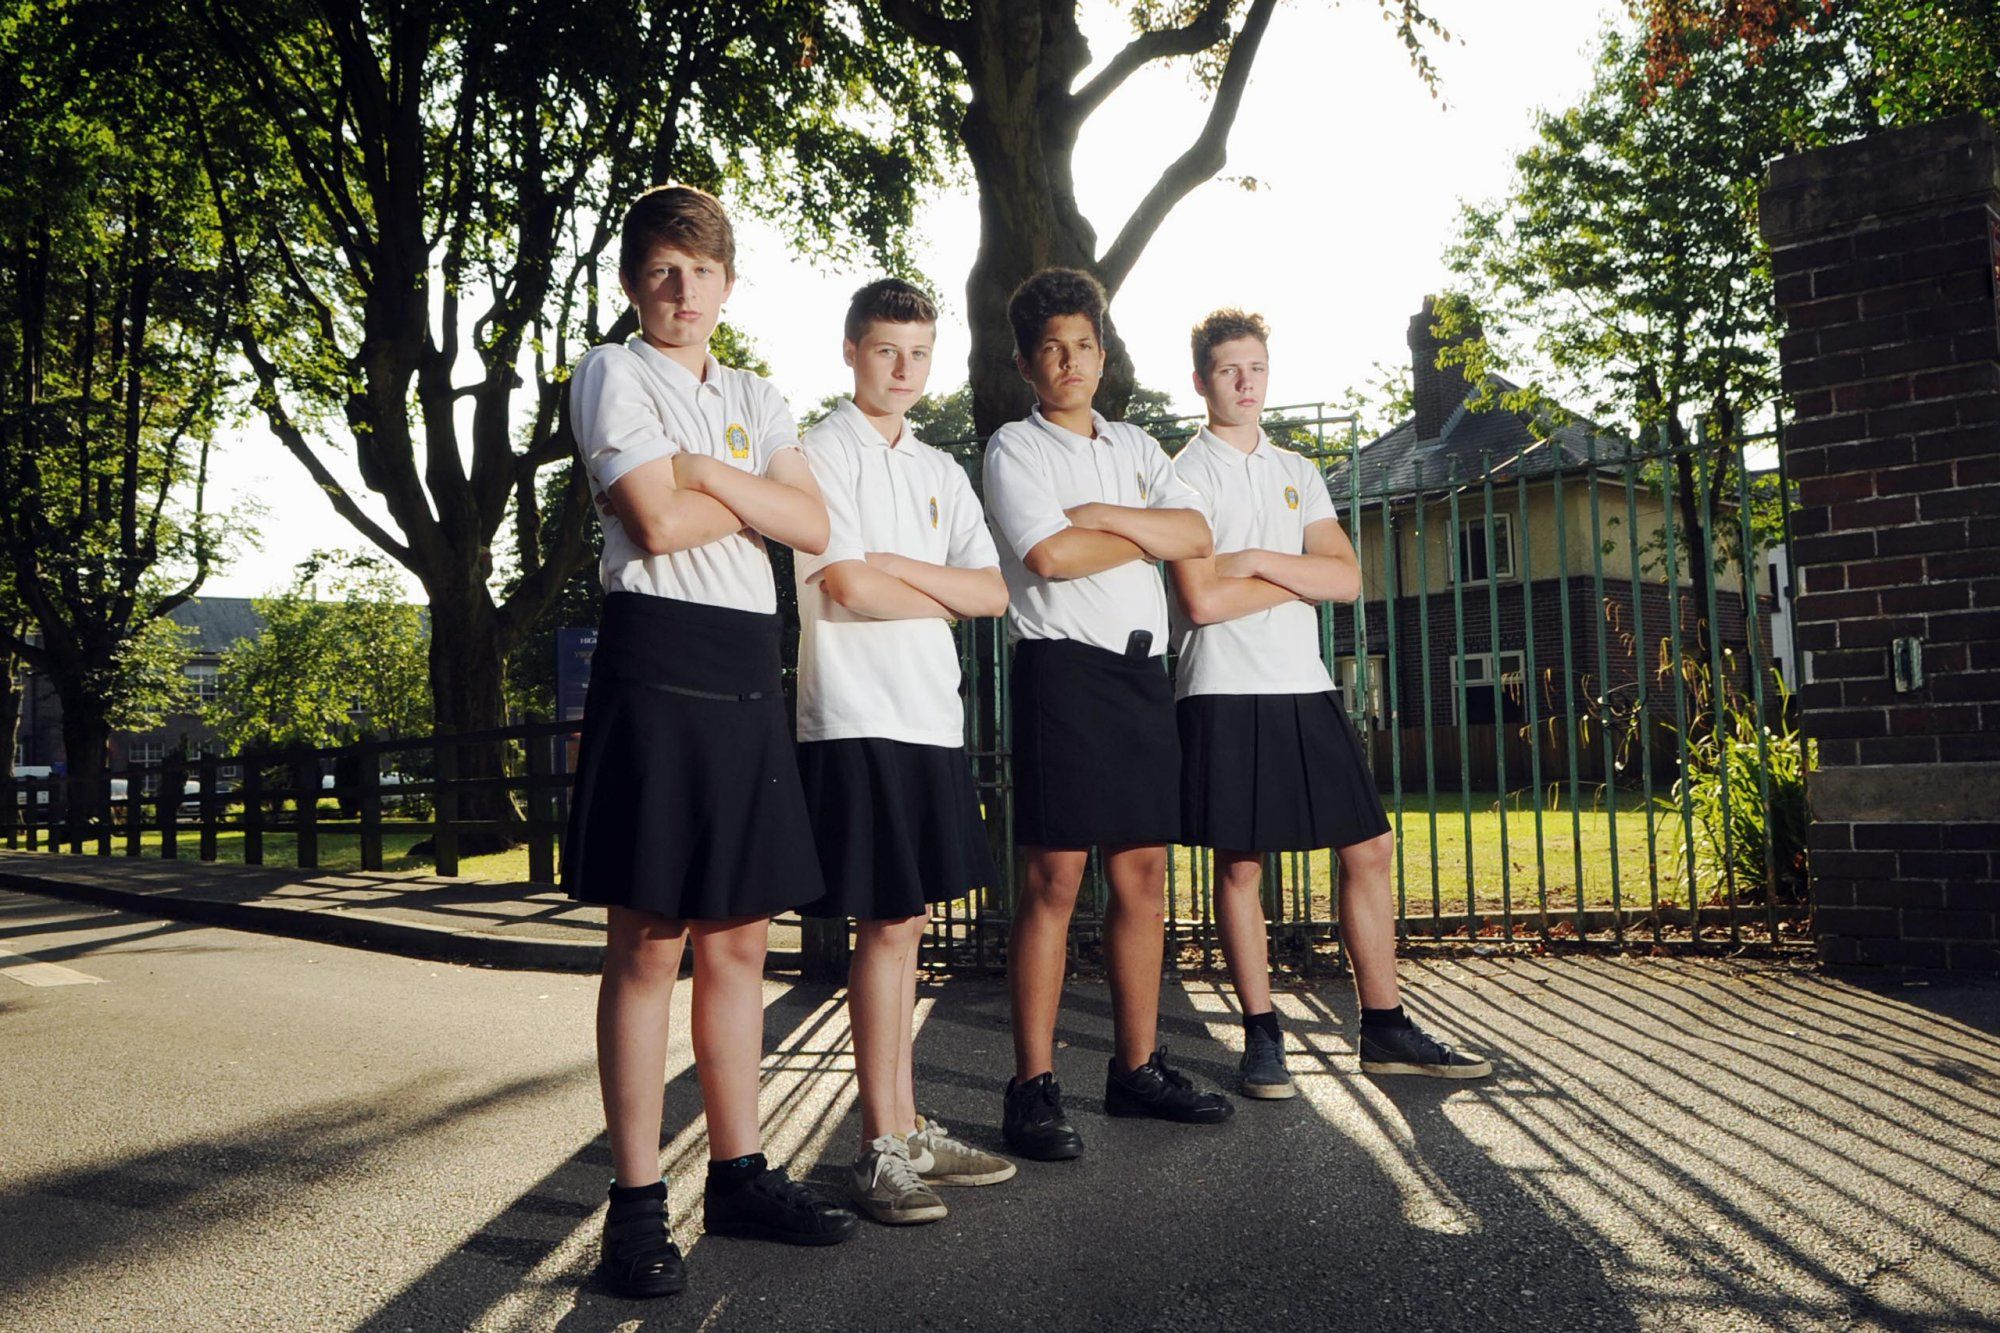 Welsh Boys Wear Skirts In Protest Of High School Dress